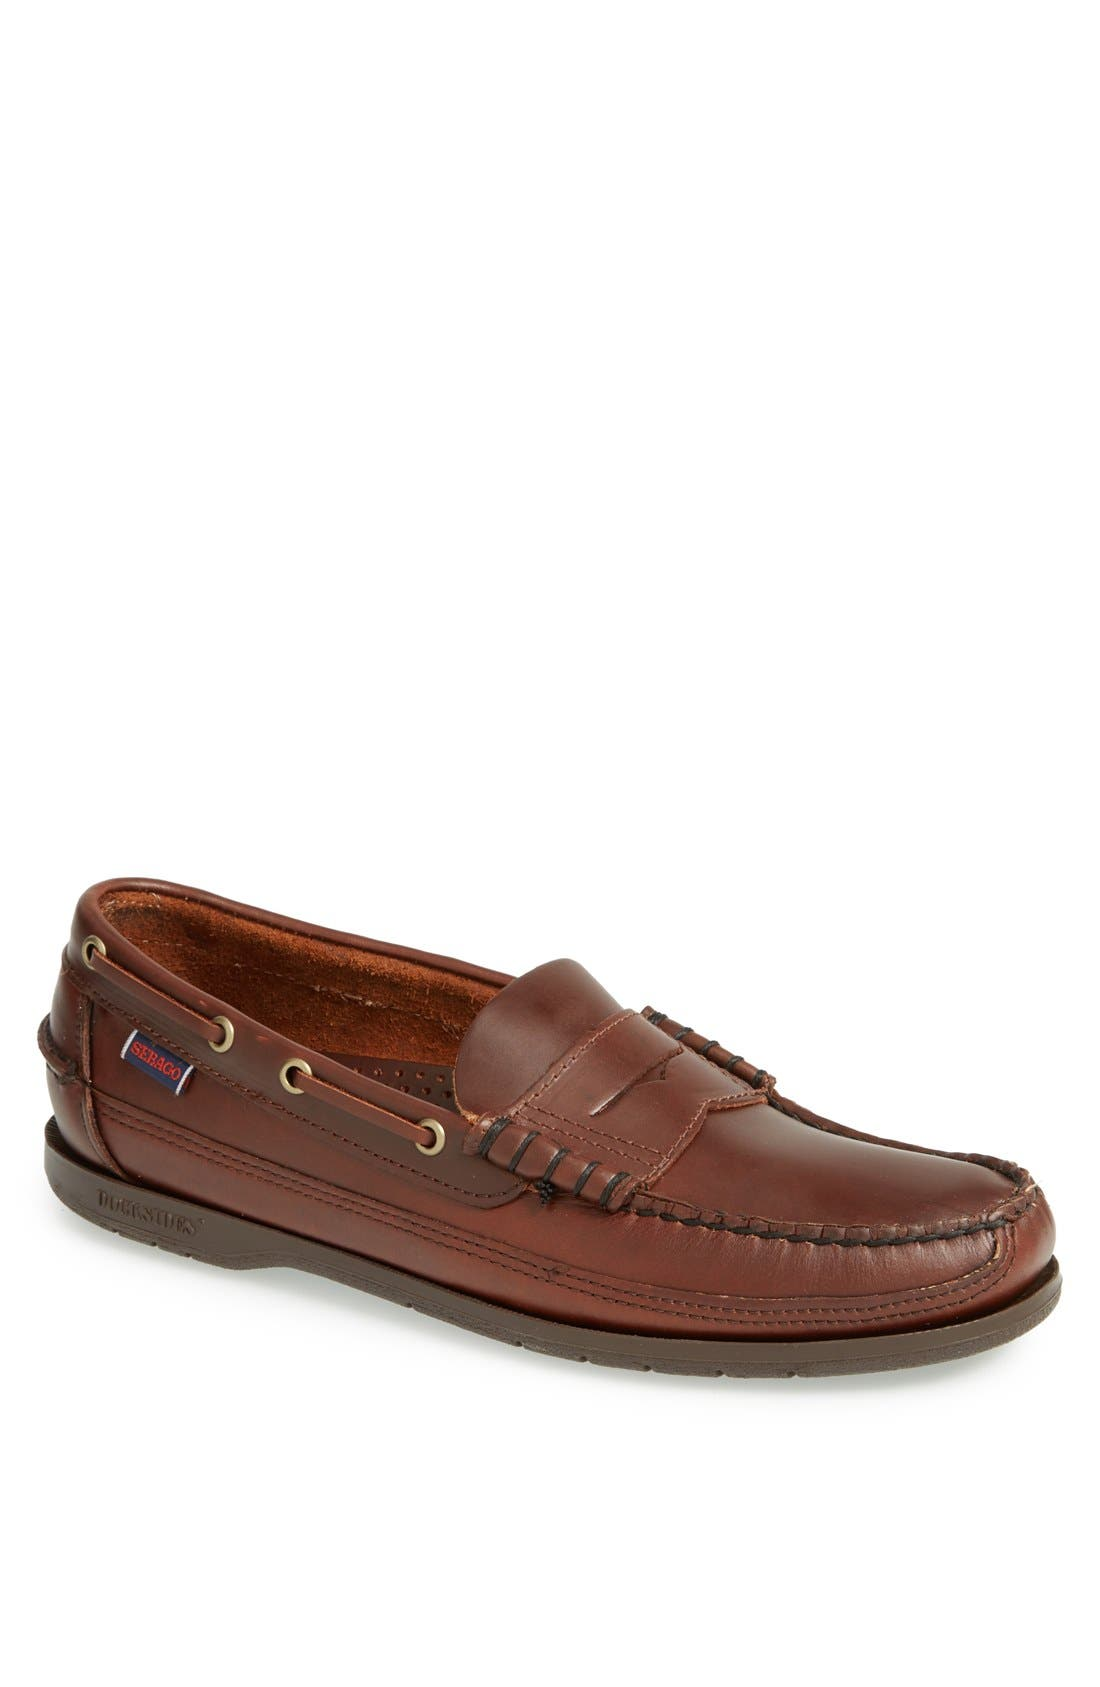 'Sloop' Penny Loafer,                             Main thumbnail 1, color,                             Brown